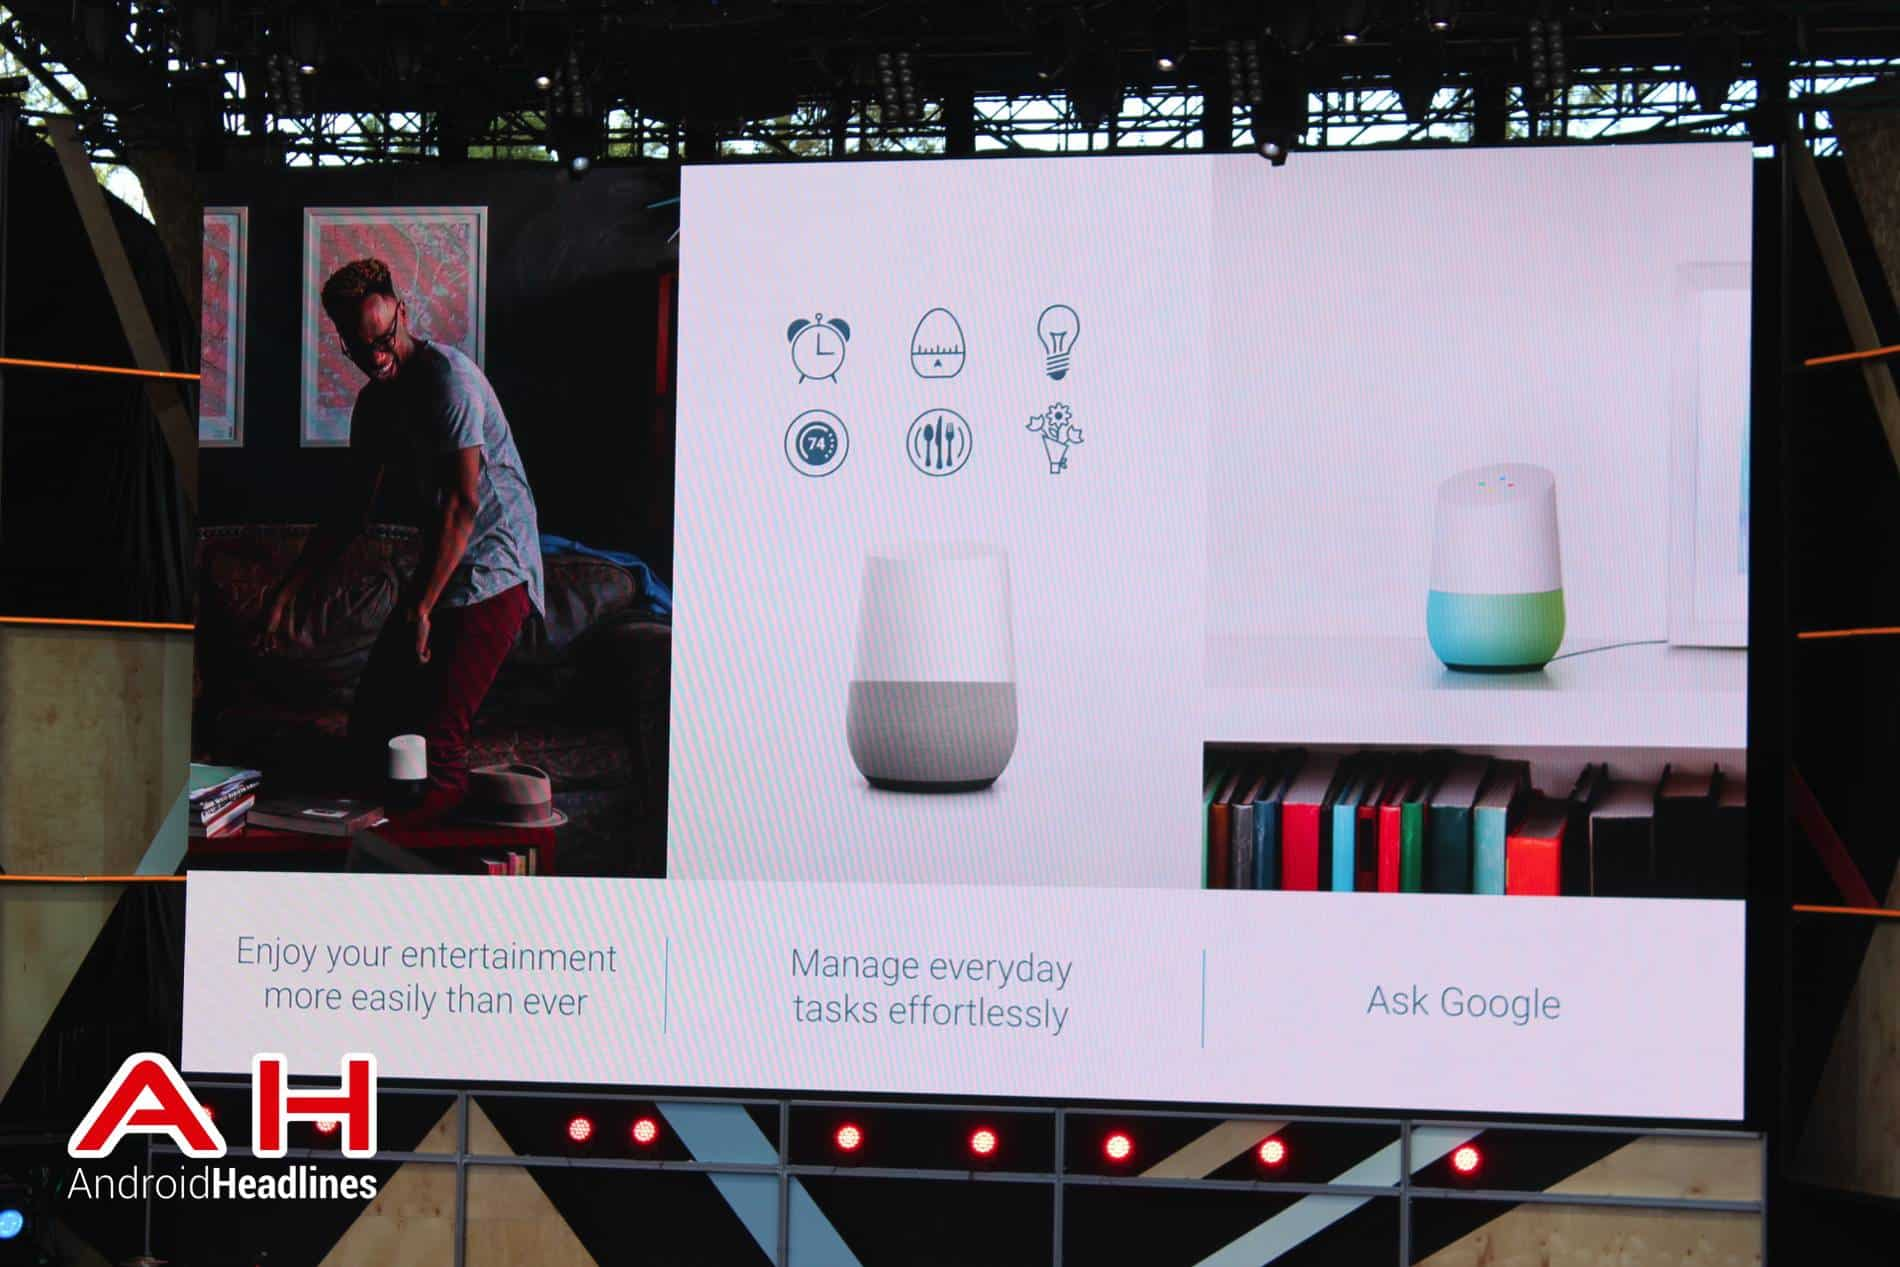 Google IO Keynote Assistant and Home AH 10